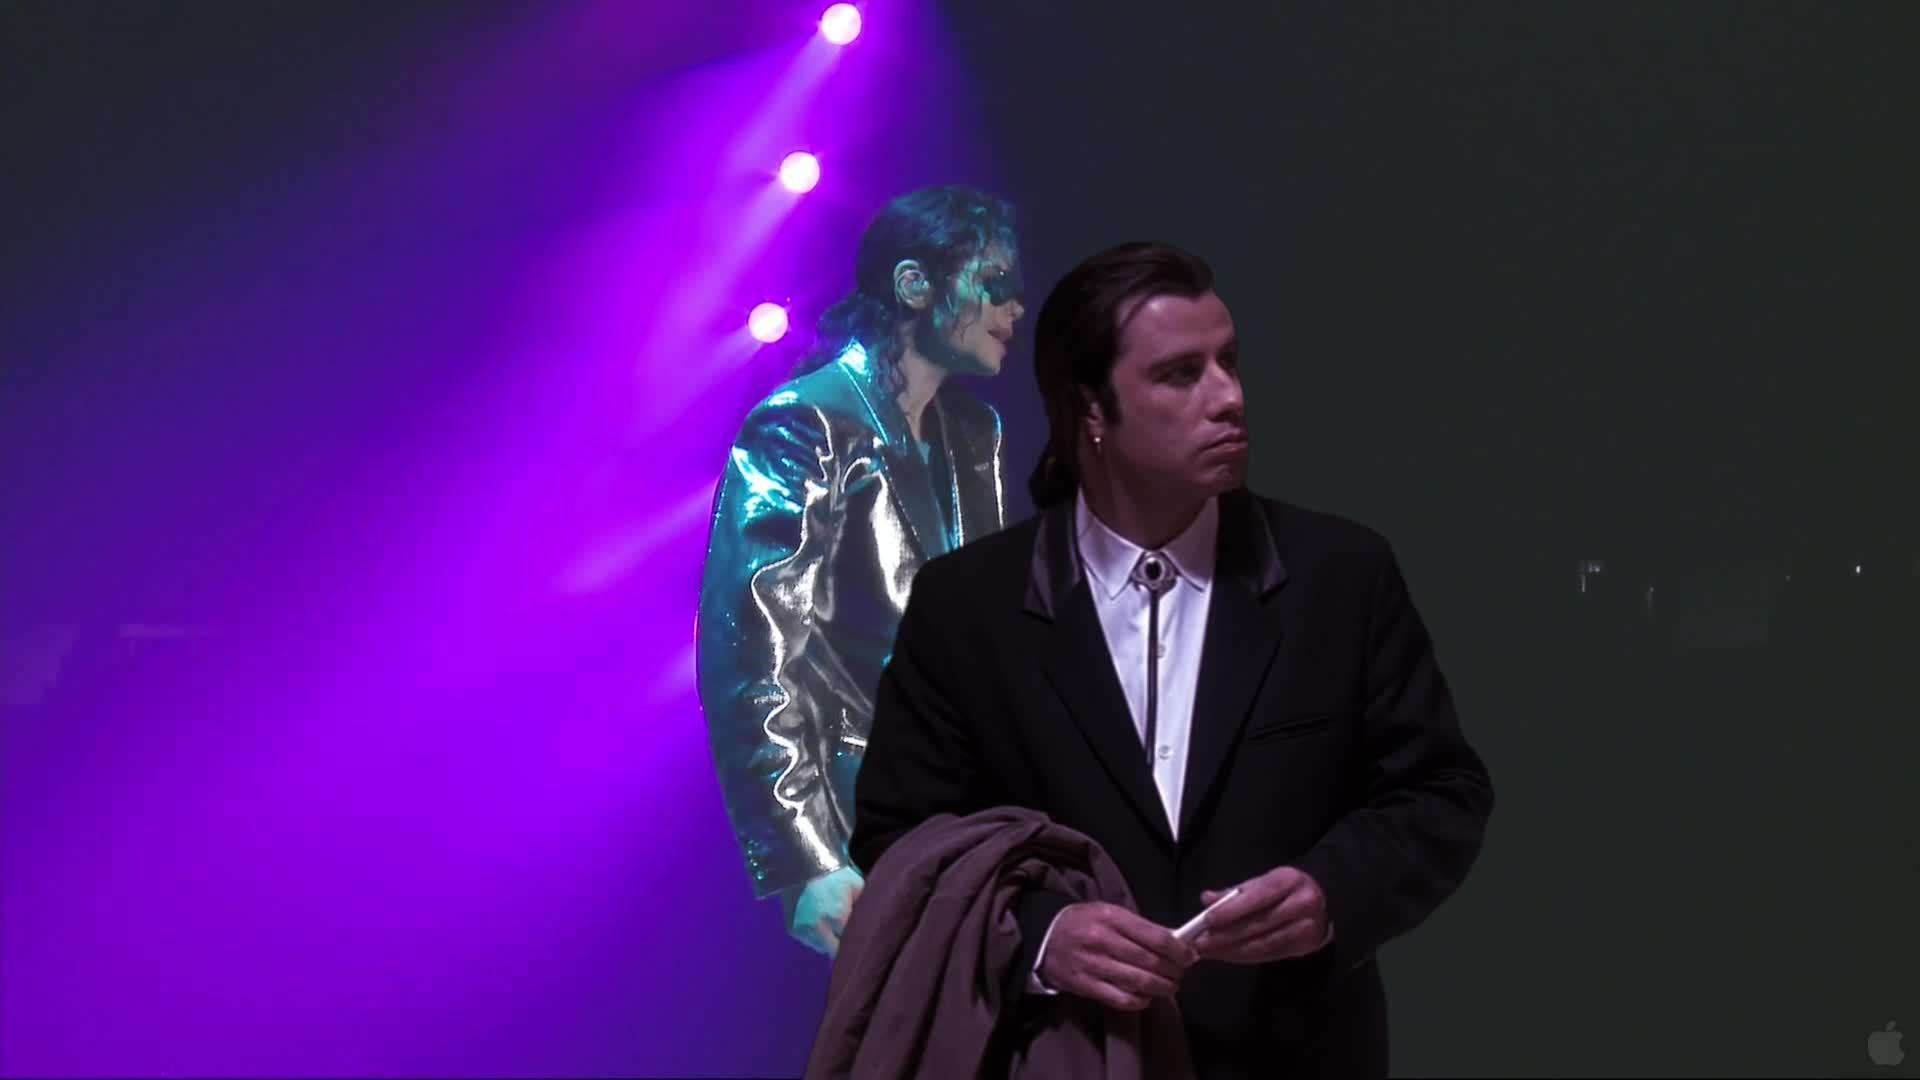 ConfusedTravolta, confusedtravolta, Travolta finds himself on stage GIFs